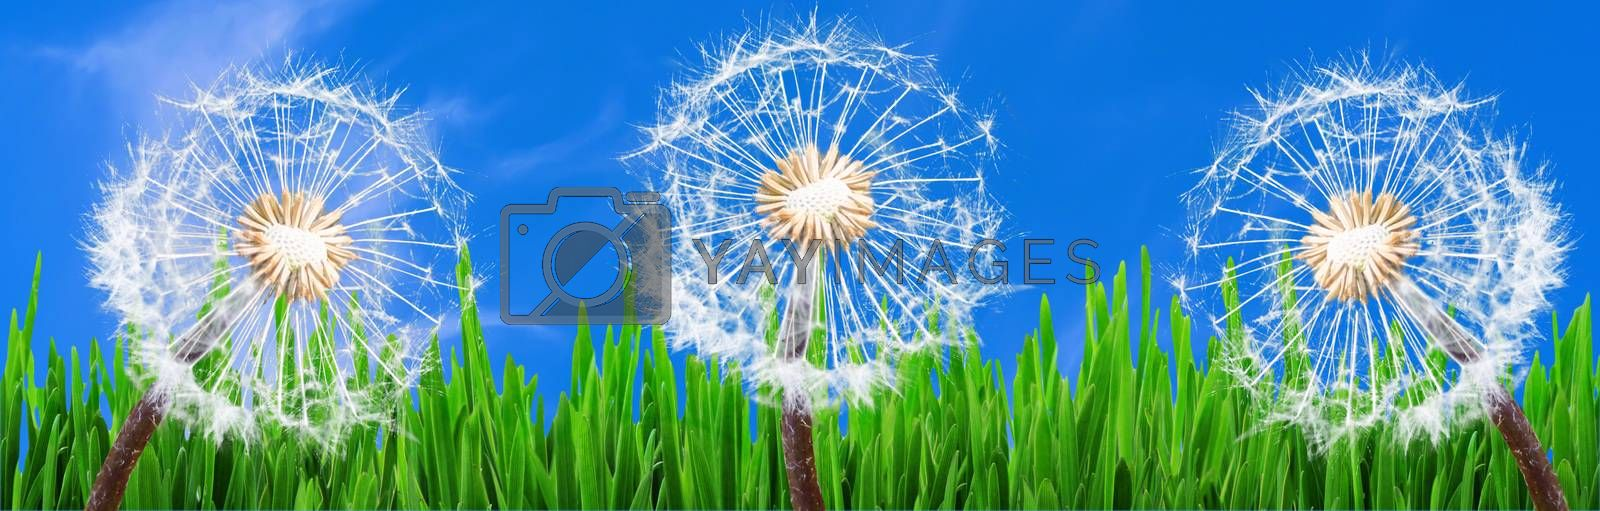 Panorama, 3 Dandelions in the grass against a blue sky with white clouds